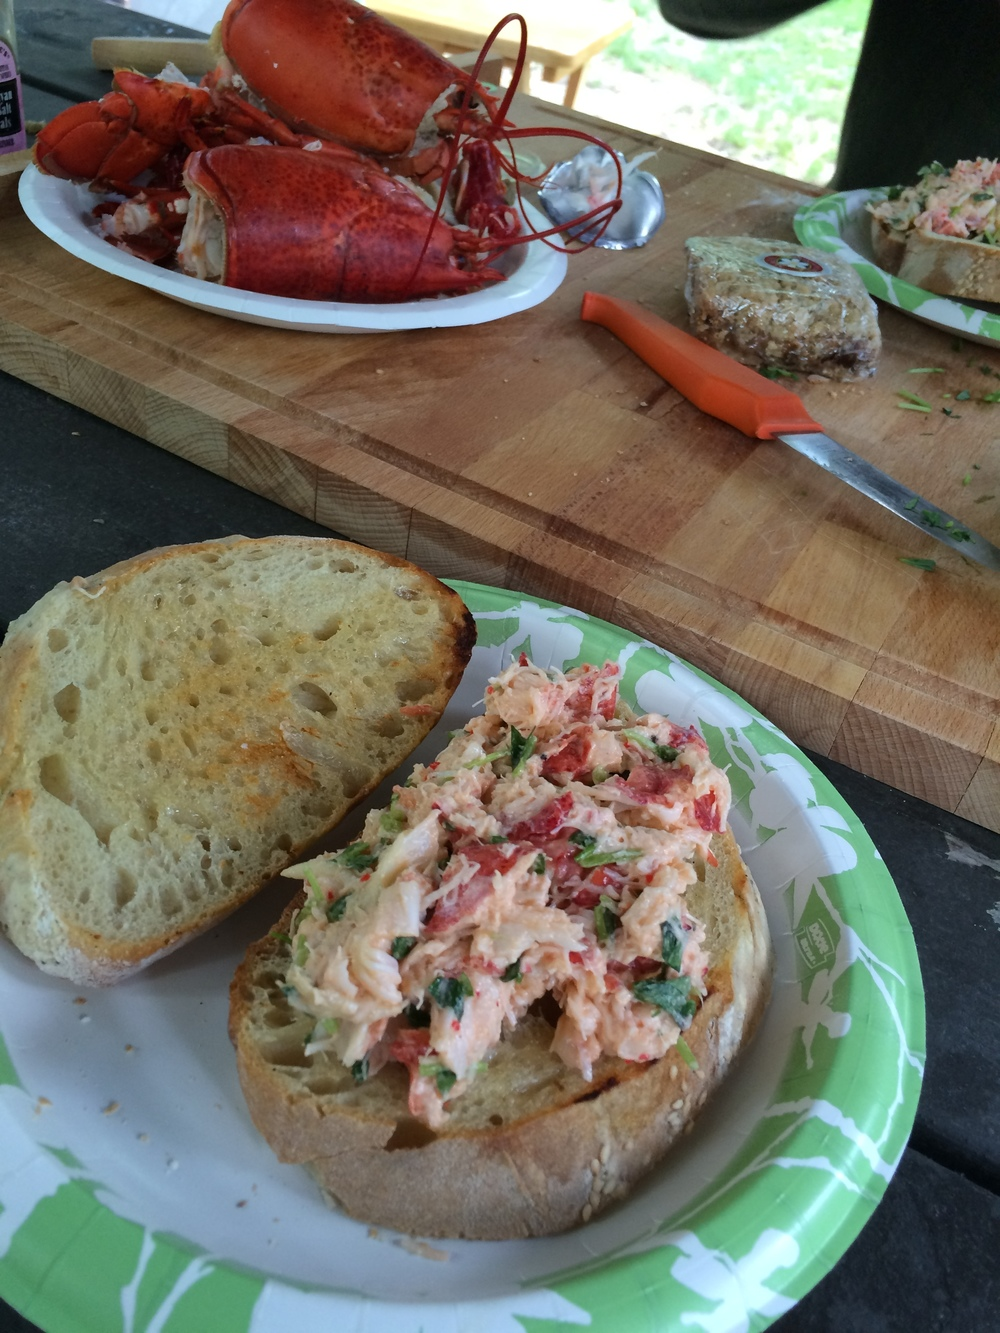 We couldn't go to Maine without making homemade lobster rolls